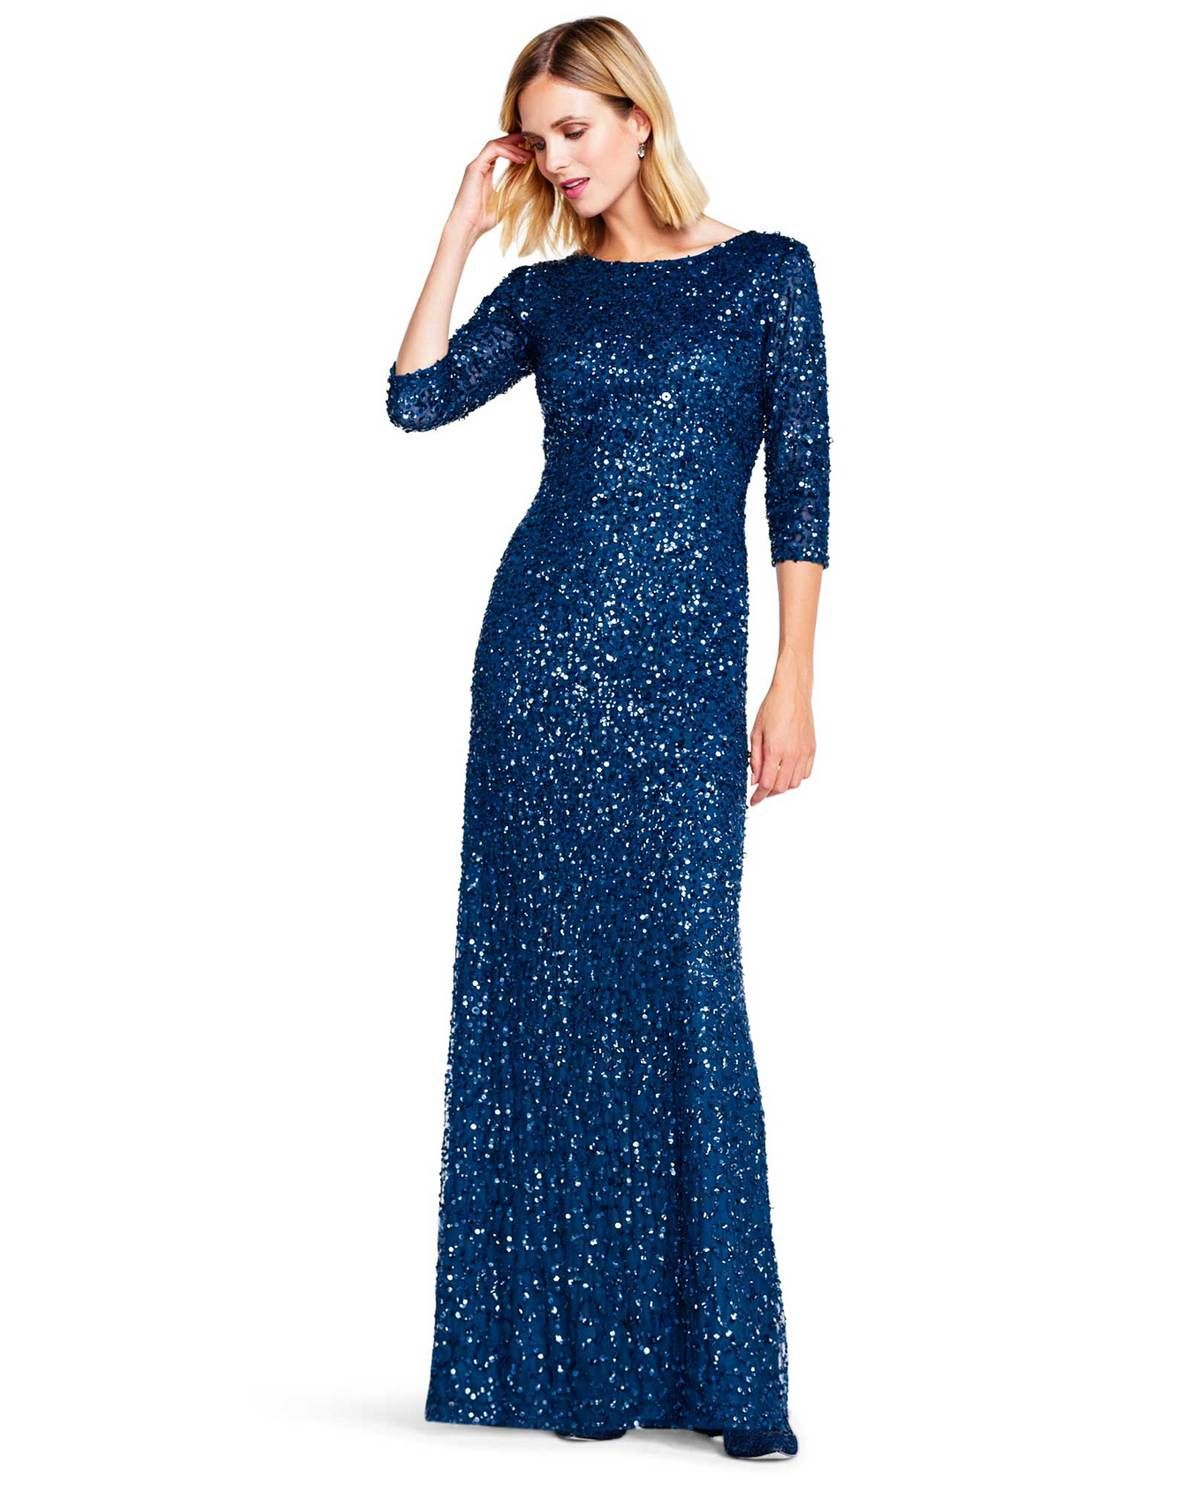 Adrianna Papell Beaded Dress Beaded Evening Gowns Gowns Blue Wedding Guest Dresses [ 1485 x 1200 Pixel ]